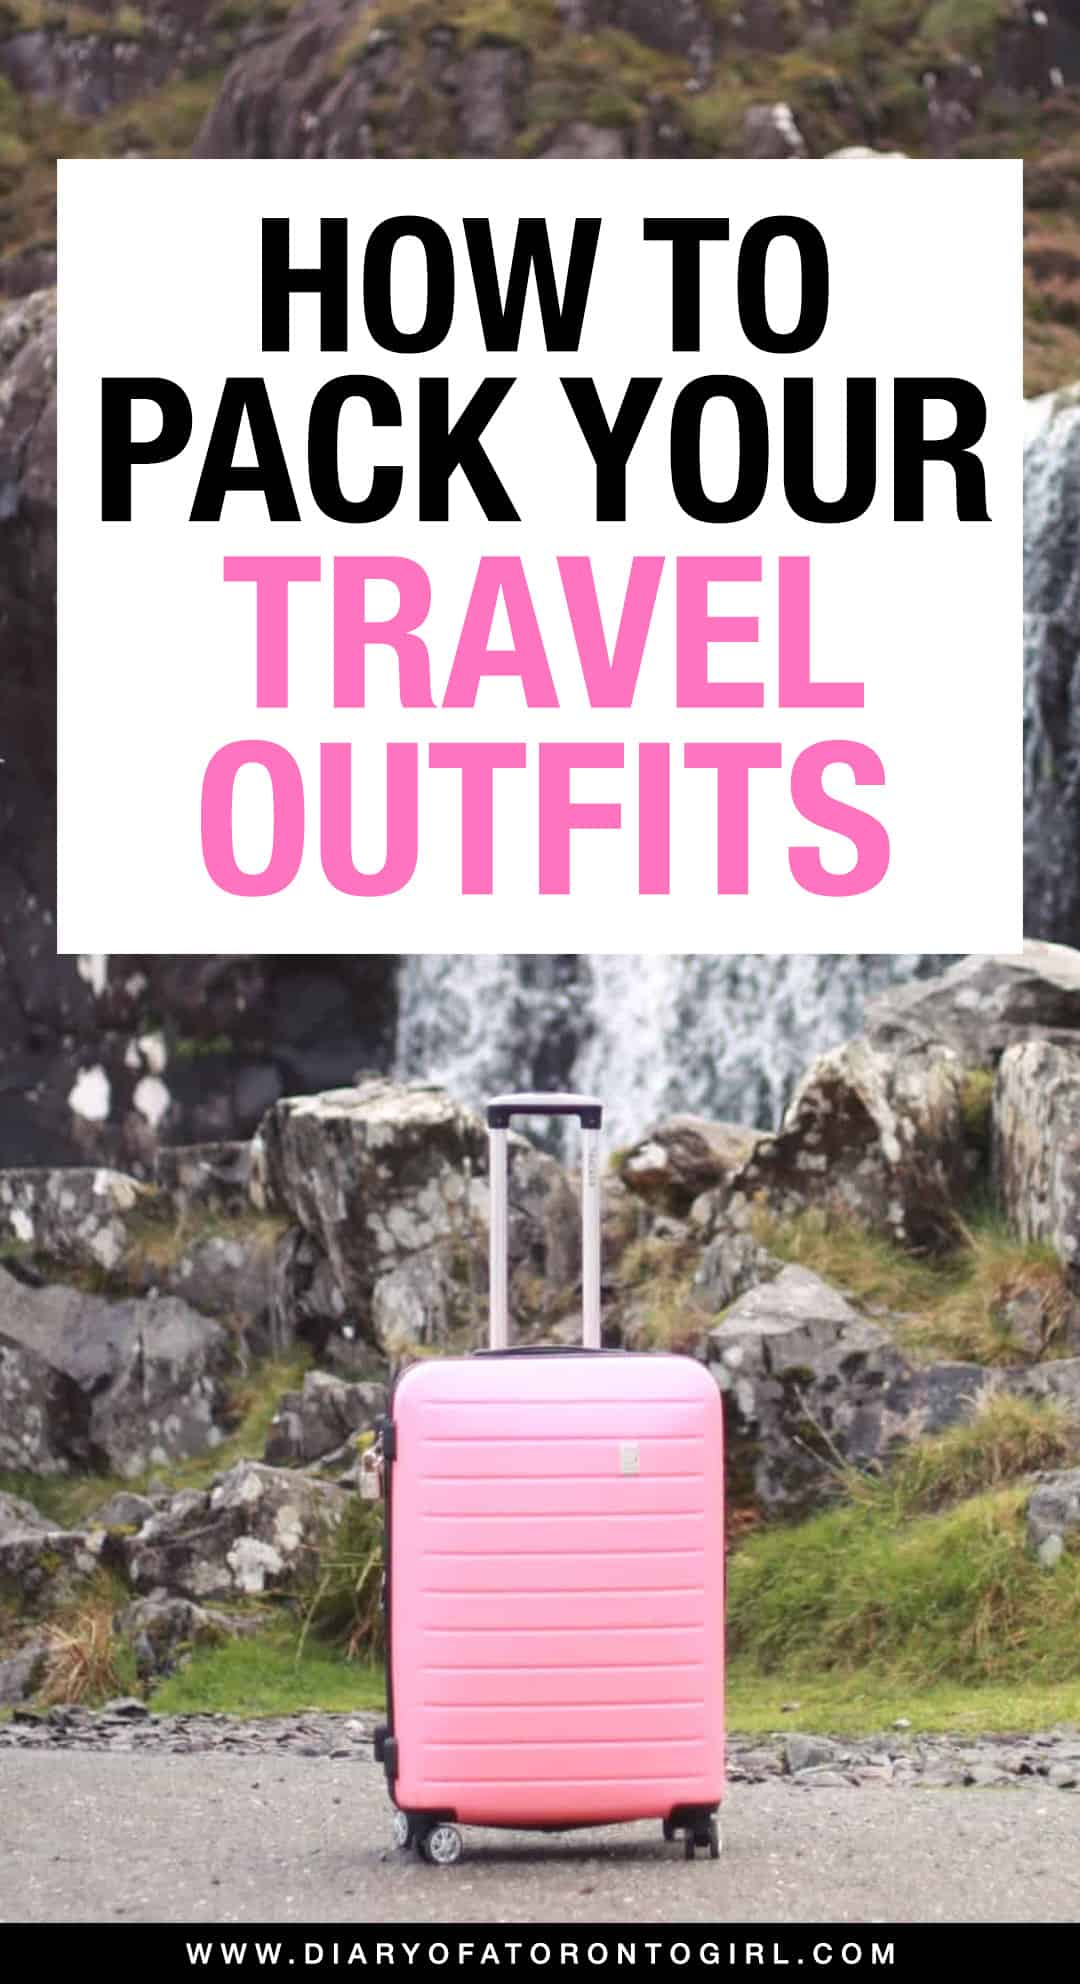 Planning an upcoming vacation? Here's your ultimate guide on how to pack outfits for your trip, including tips for packing and how to put together a capsule travel wardrobe!